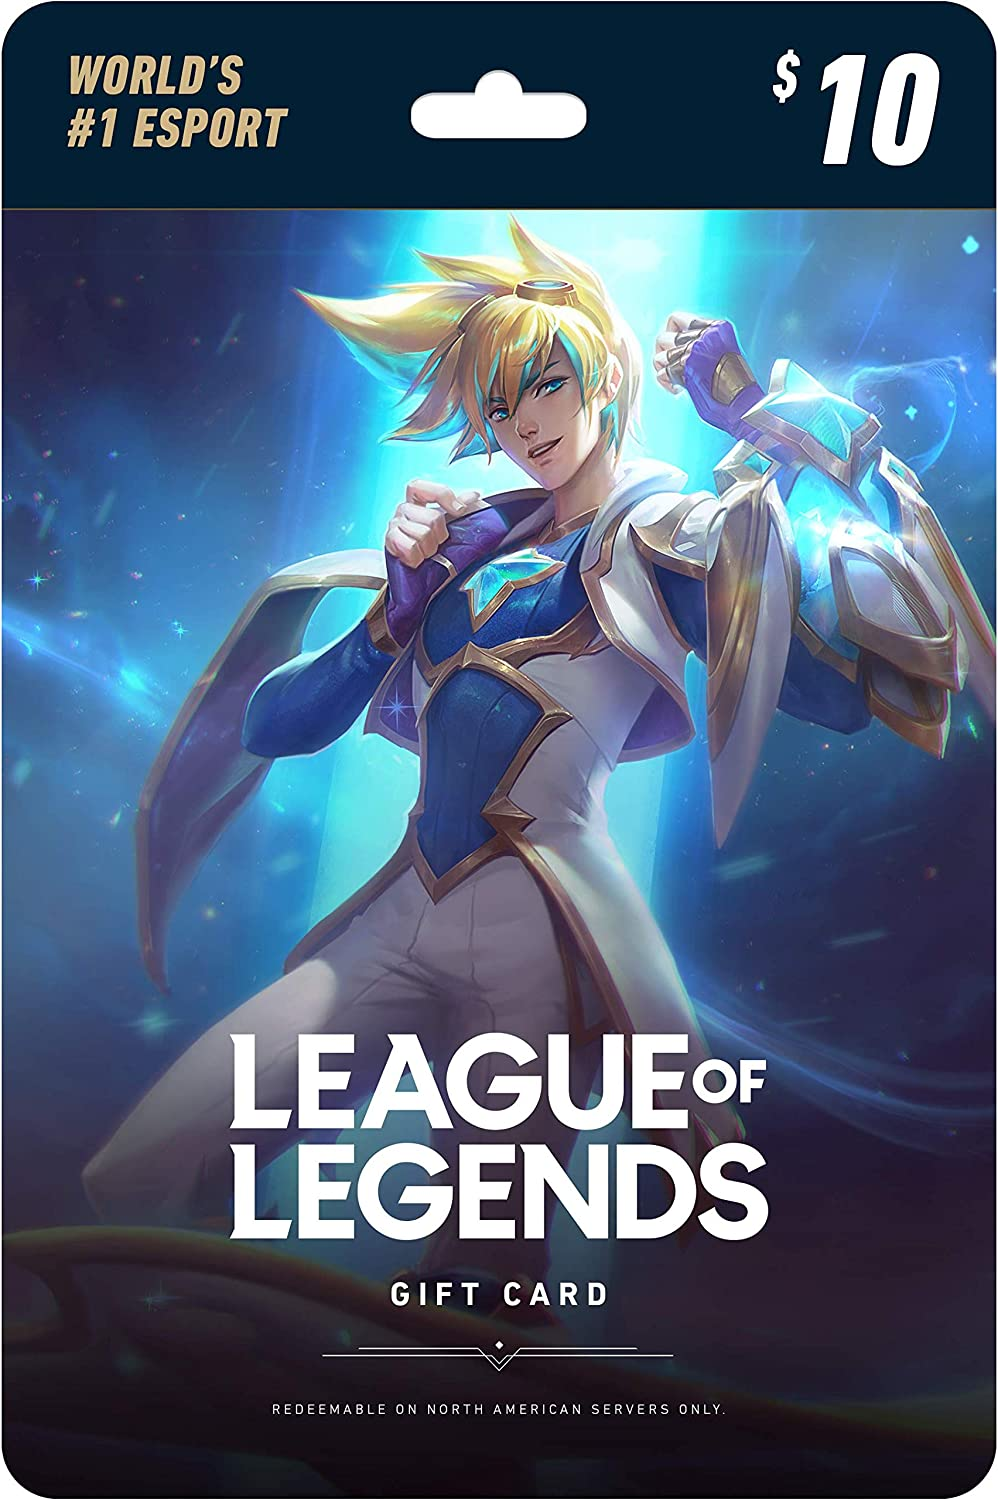 Amazon.com: League of Legends $100 Gift Card - NA Server ...